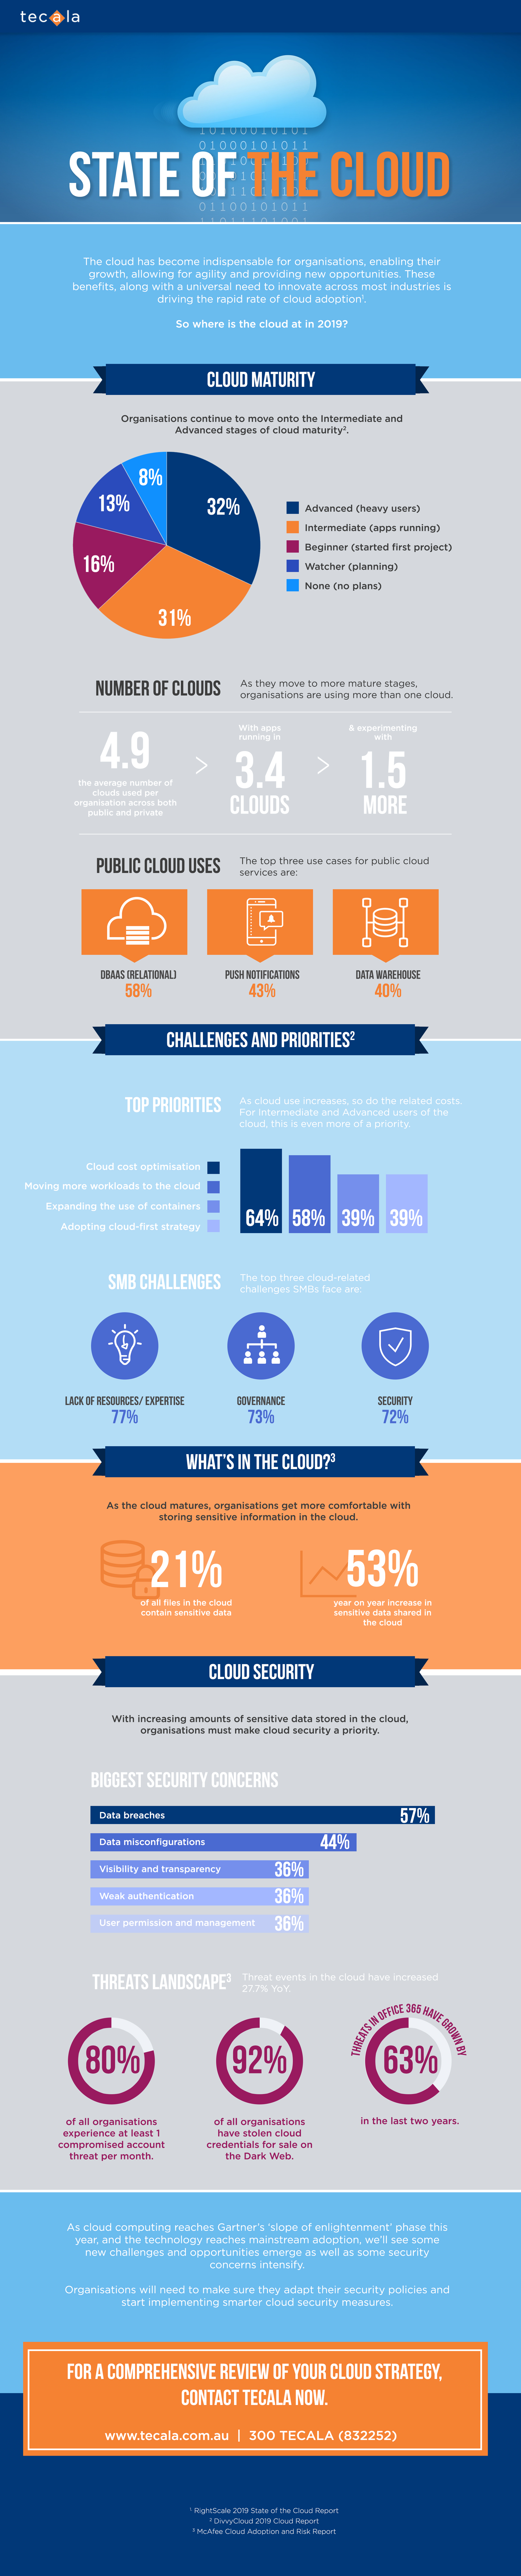 Cloud Computing Trends: 2021 State of the Cloud Infographic